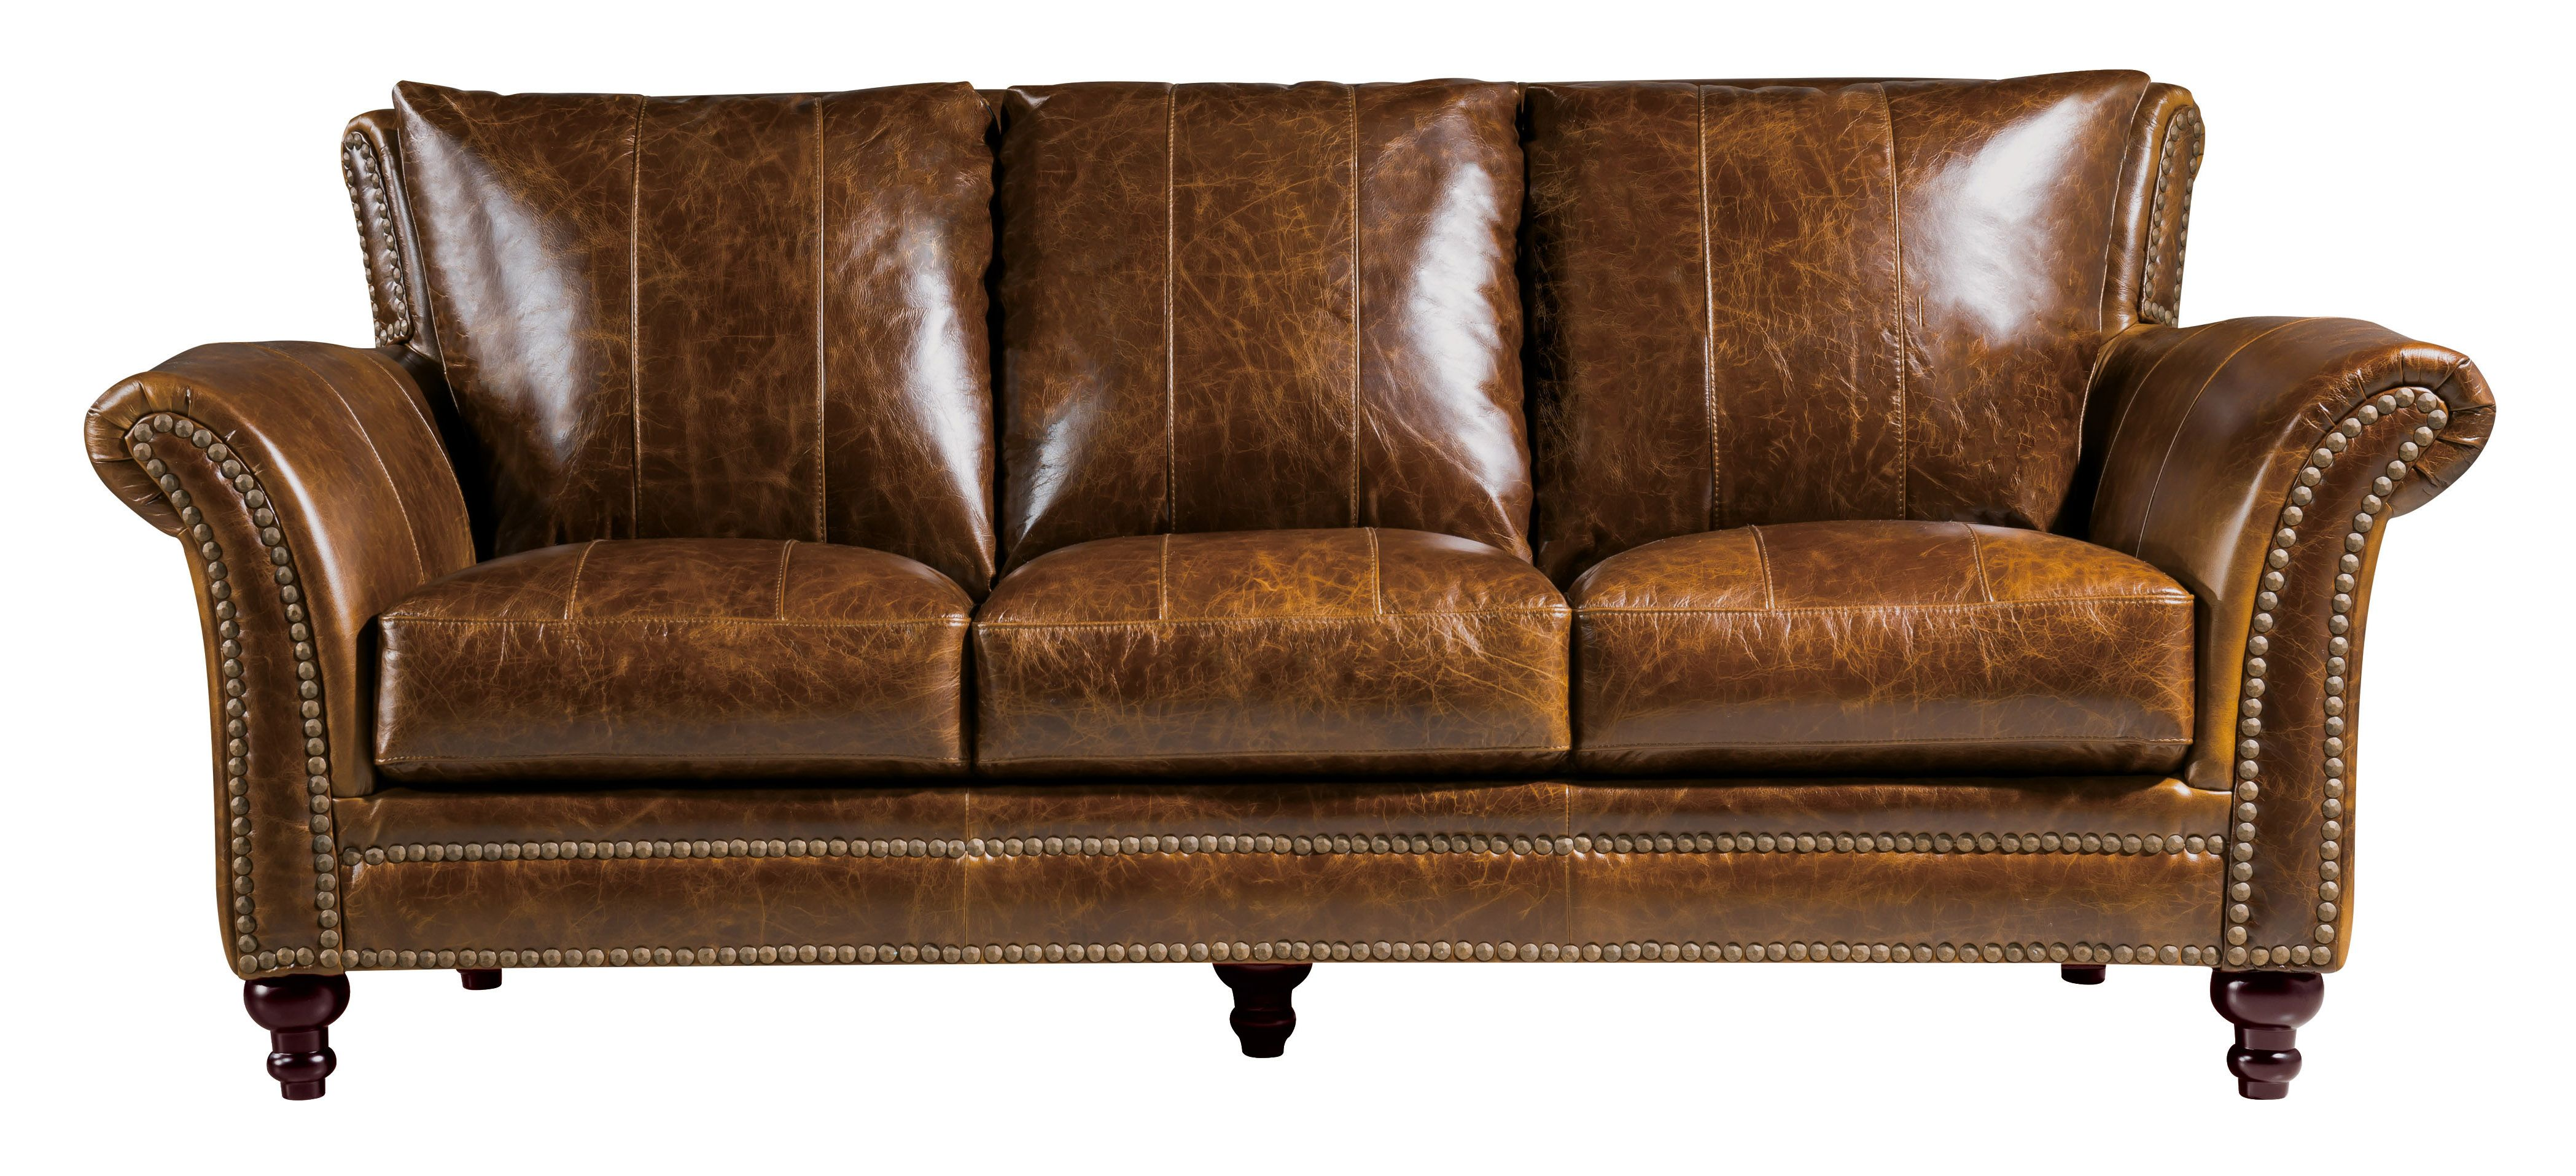 Butler Sofa by Leather Italia USA Geor own Collection Leather